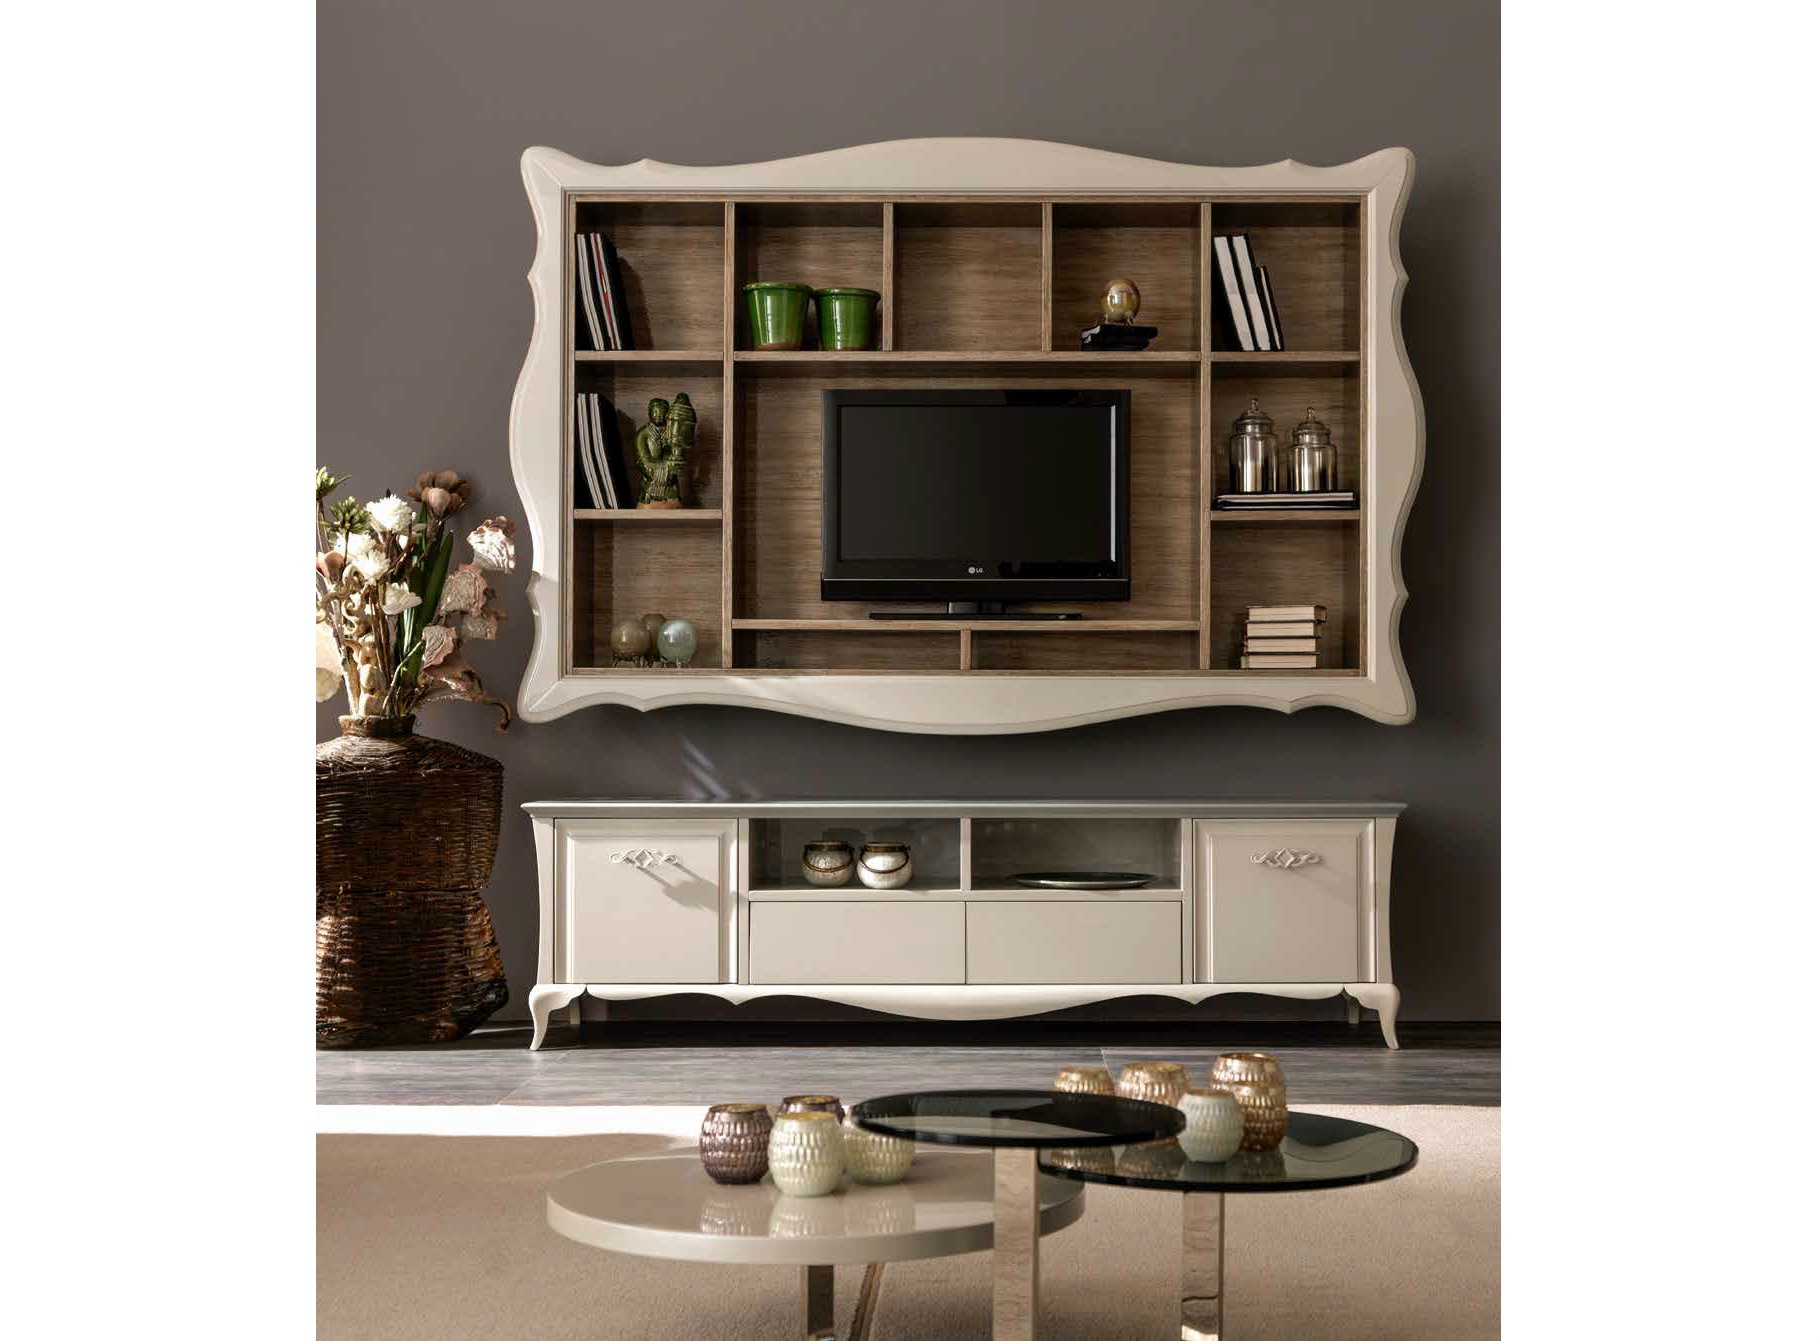 Alice mueble modular de pared con soporte para tv by cortezari - Muebles para tv plana ...